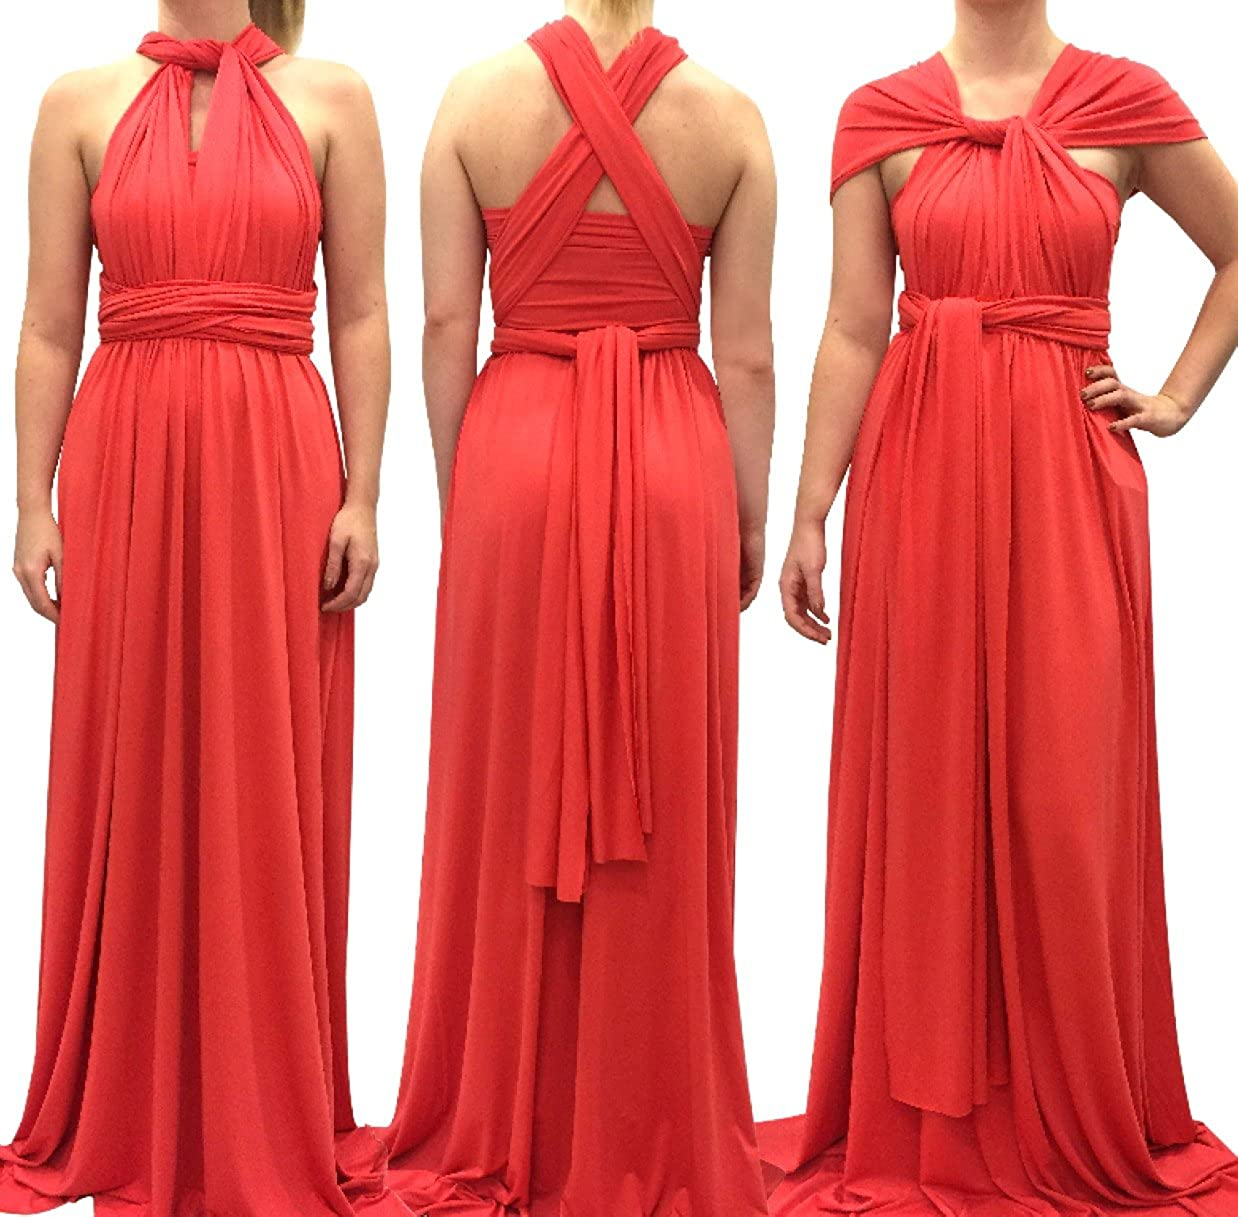 4Now Fashions Long Coral Infinity Bridesmaid Dress Convertible Multiway